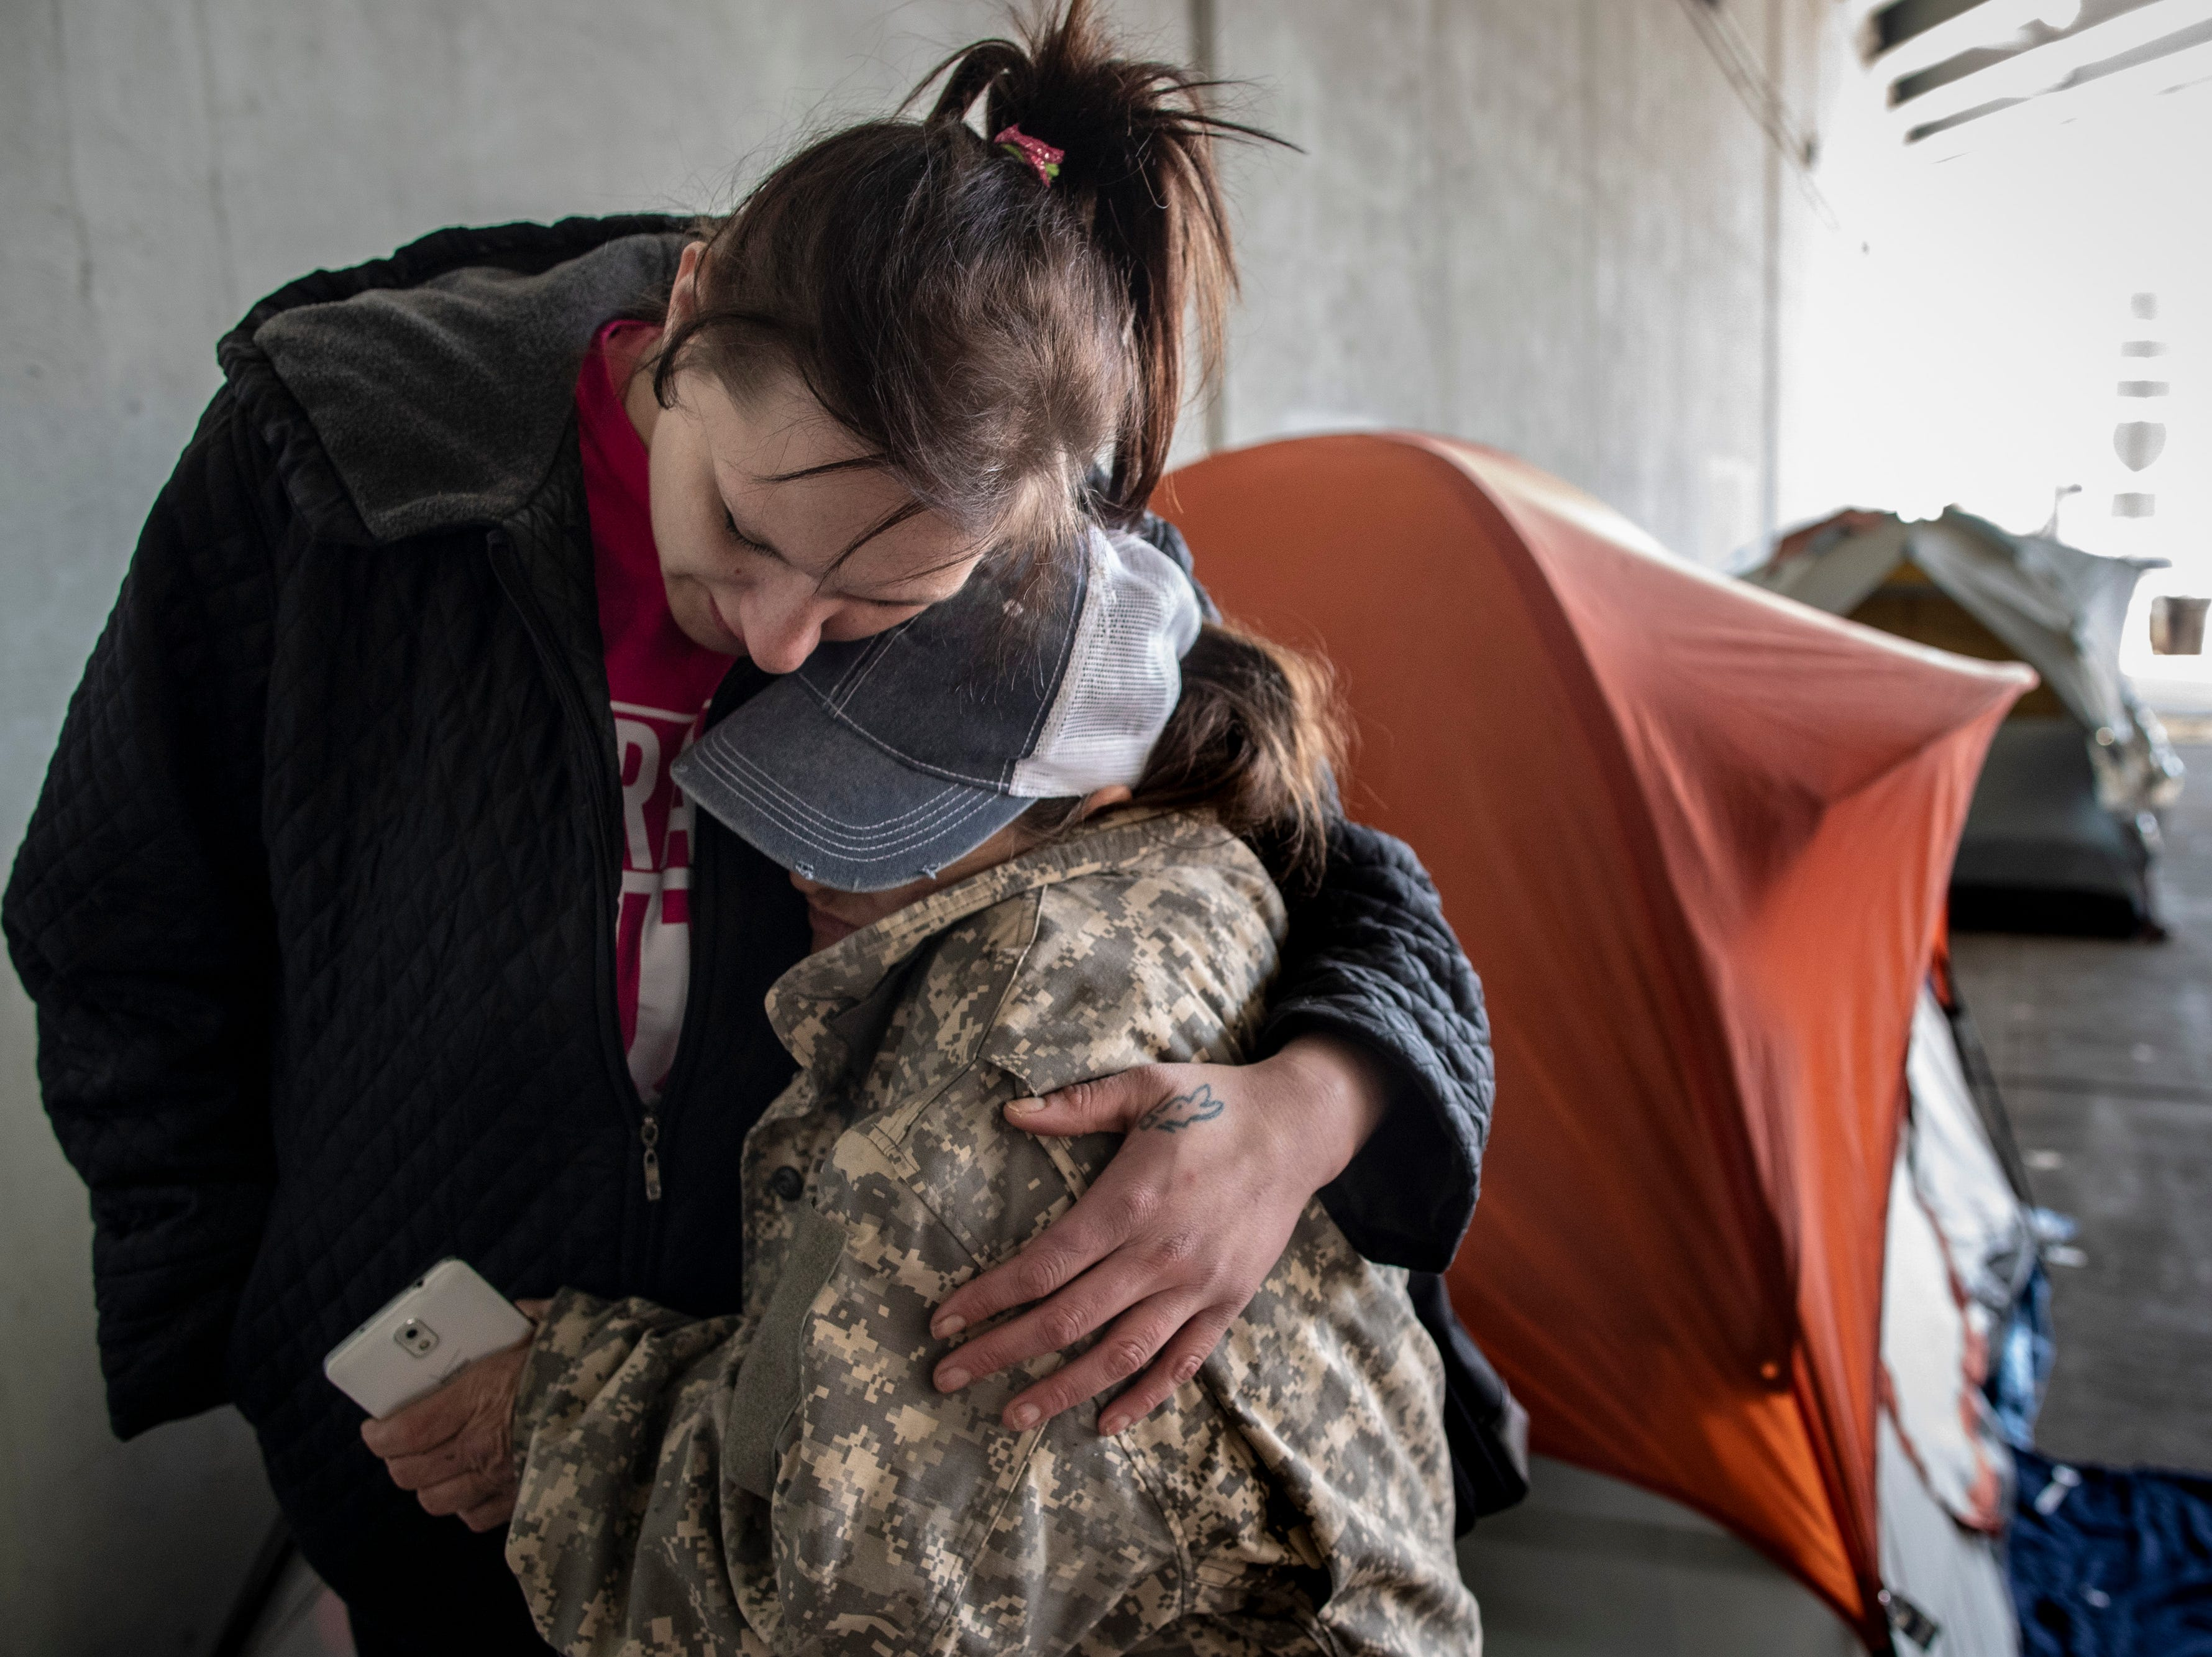 """Amanda Mathews, left, gets a hug from fellow homeless resident Candace Curry at the homeless camp area under the bypasses along East Jefferson Street and Jackson Street in downtown Louisville. Mathews has been homeless for a year after losing the love of her life and her mother within a span of a few months. """"I came to Louisville and totaled my car,"""" Mathews said. """"I'd never been homeless. I'd never been hungry before. It's definitely changed me personally."""" March 18, 2019"""